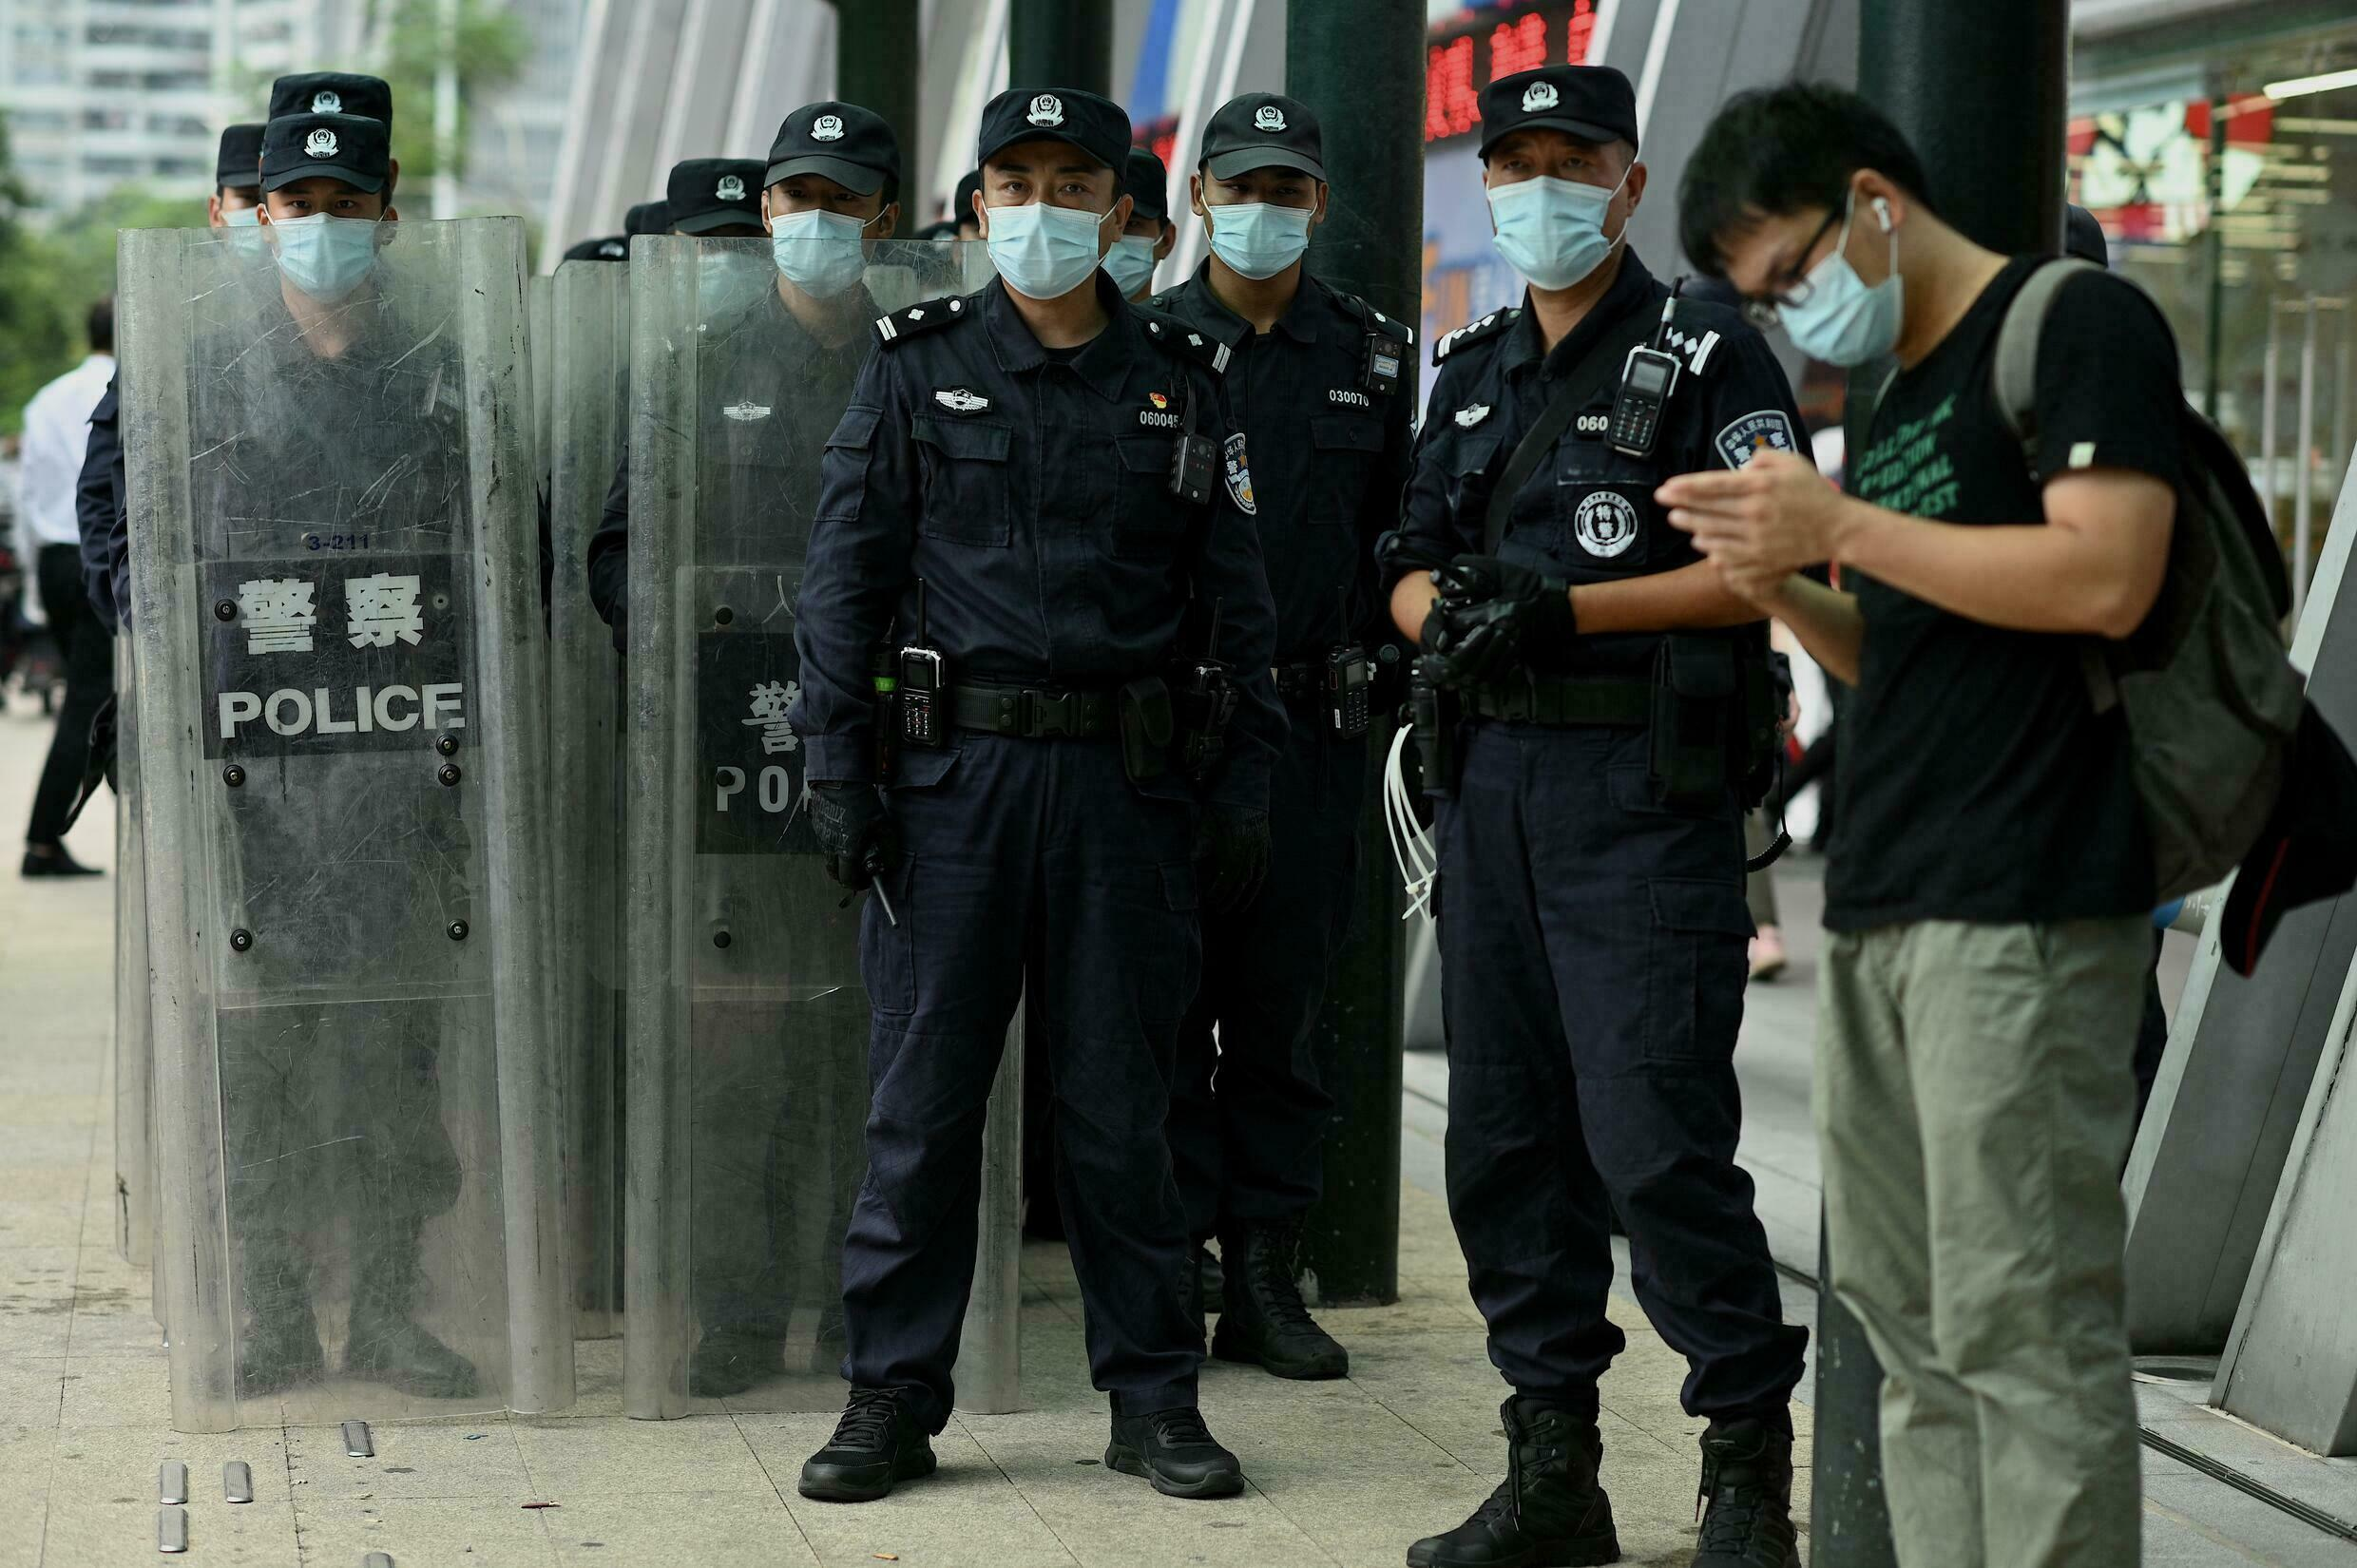 Policemen stood guard outside Evergrande's headquarters as anger grew over the housing giant's debt crisis mounted